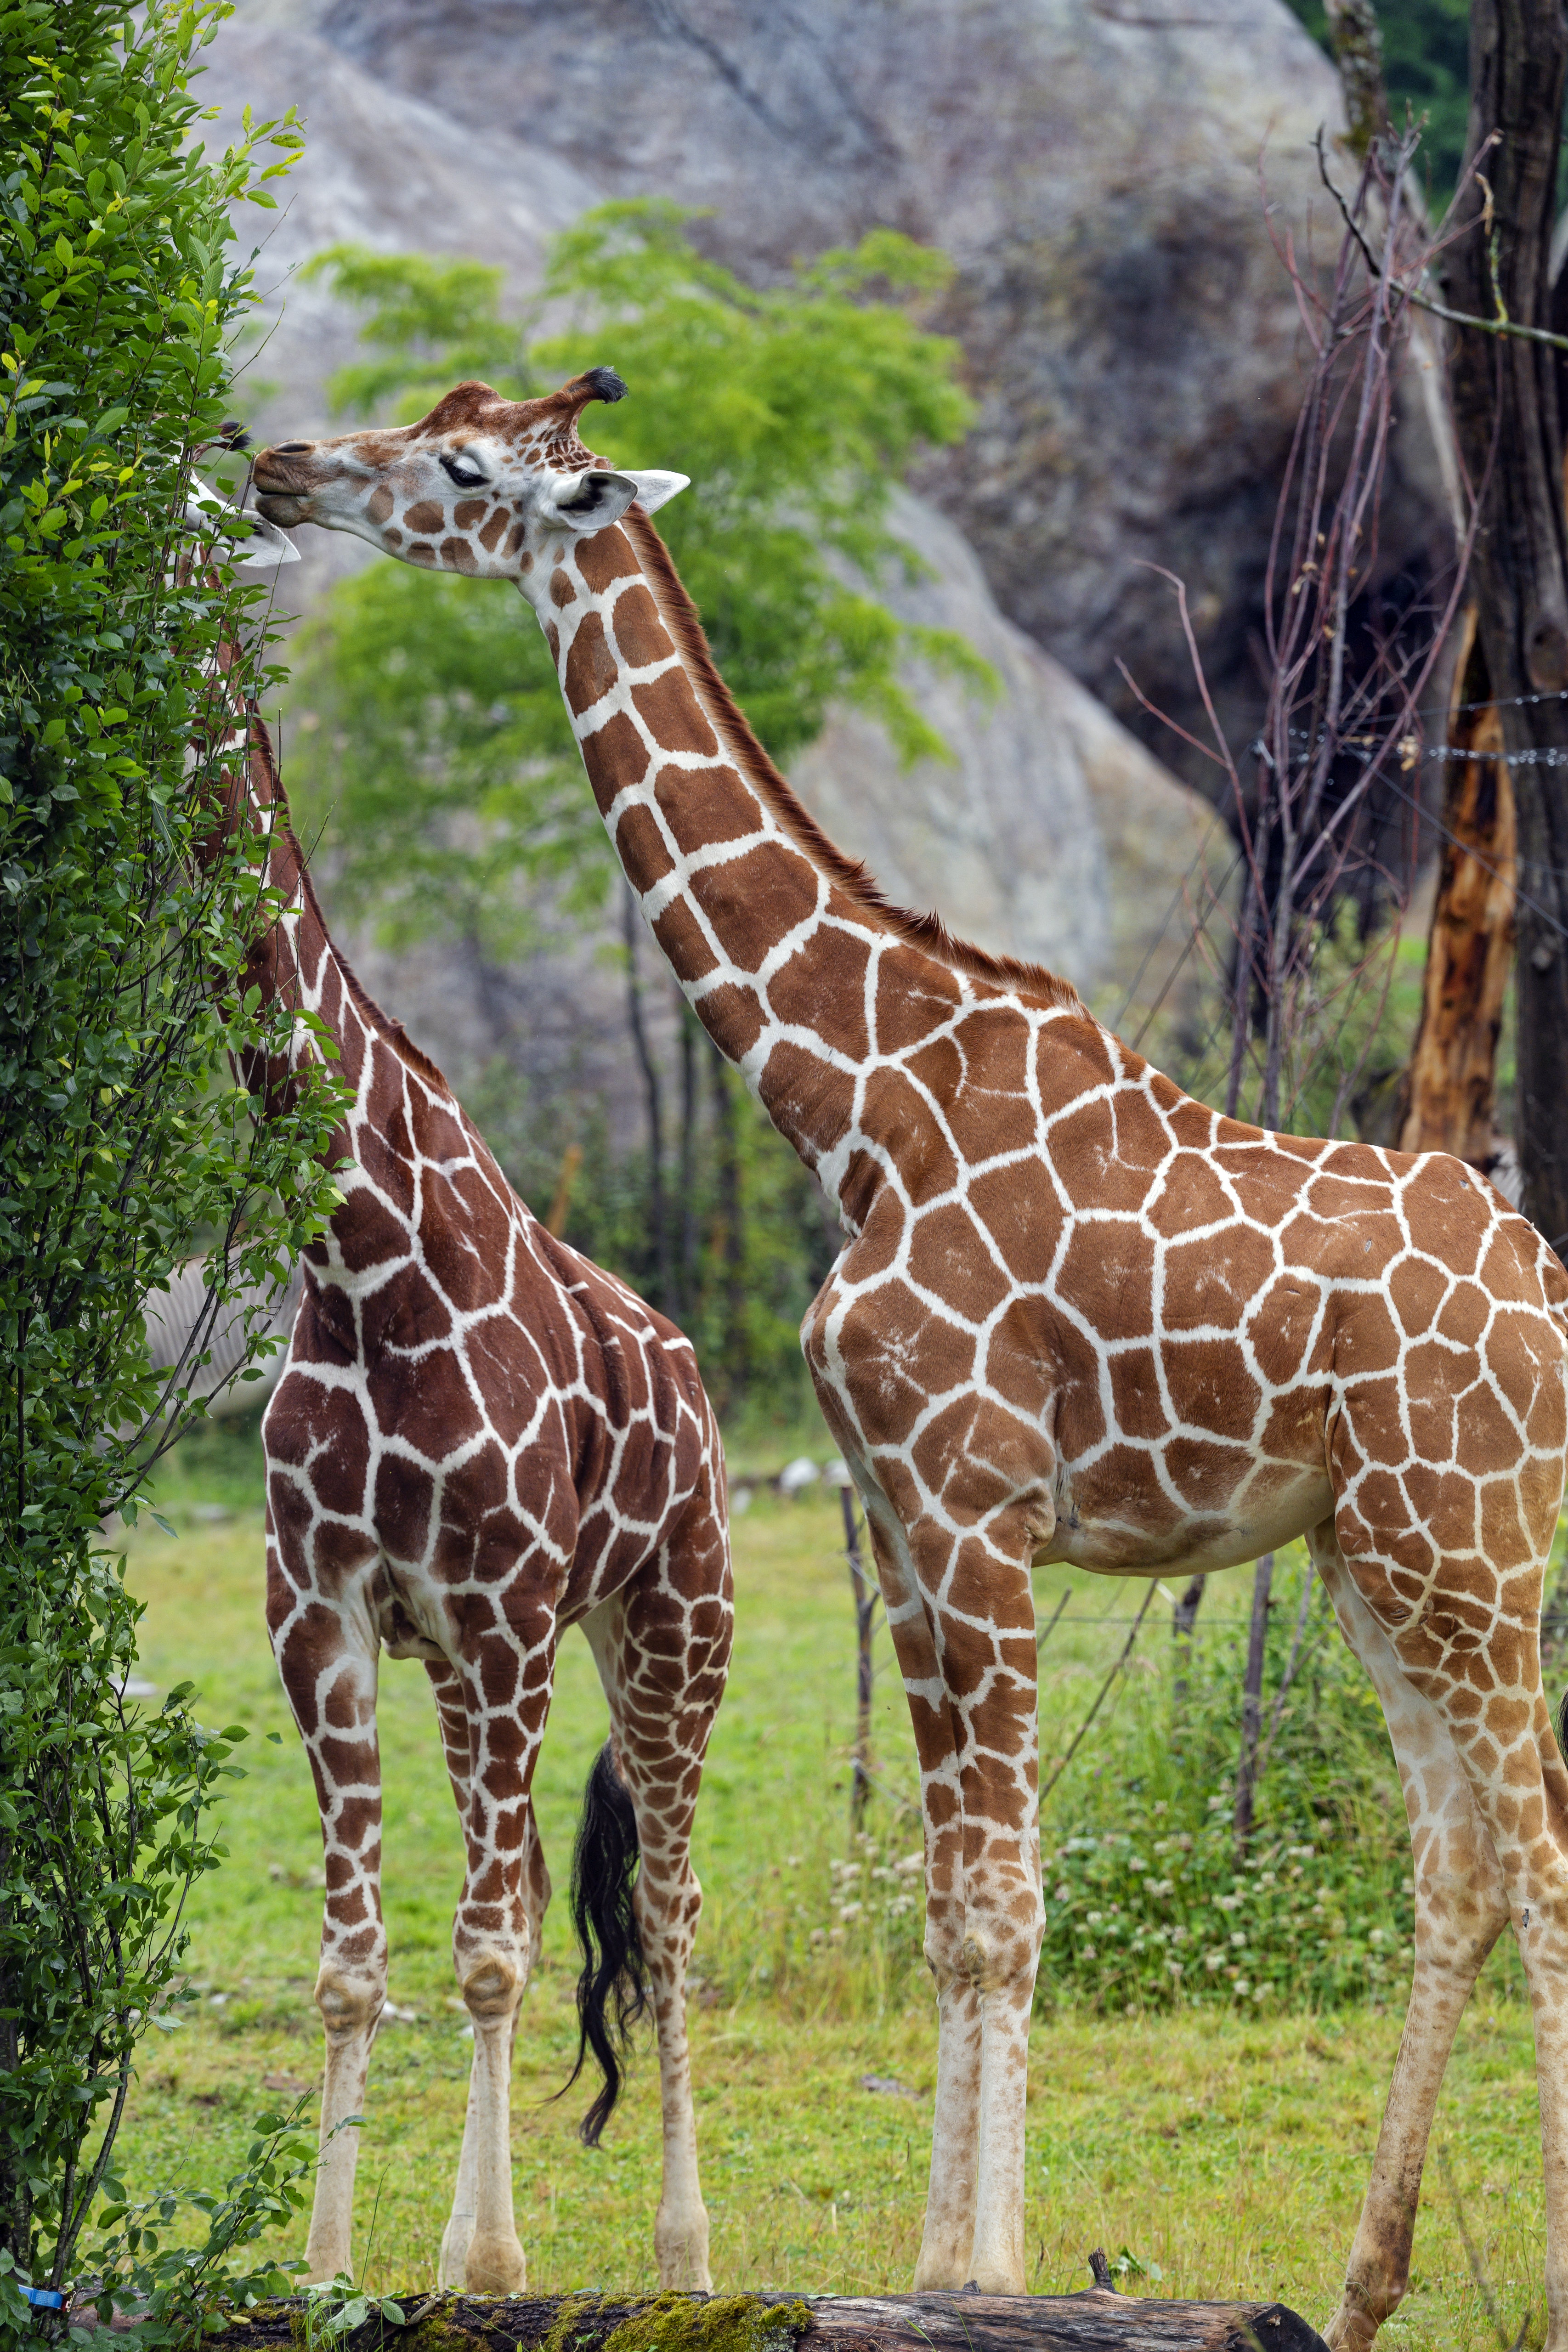 126910 download wallpaper Animals, Animal, Neck, Bush, Giraffes screensavers and pictures for free